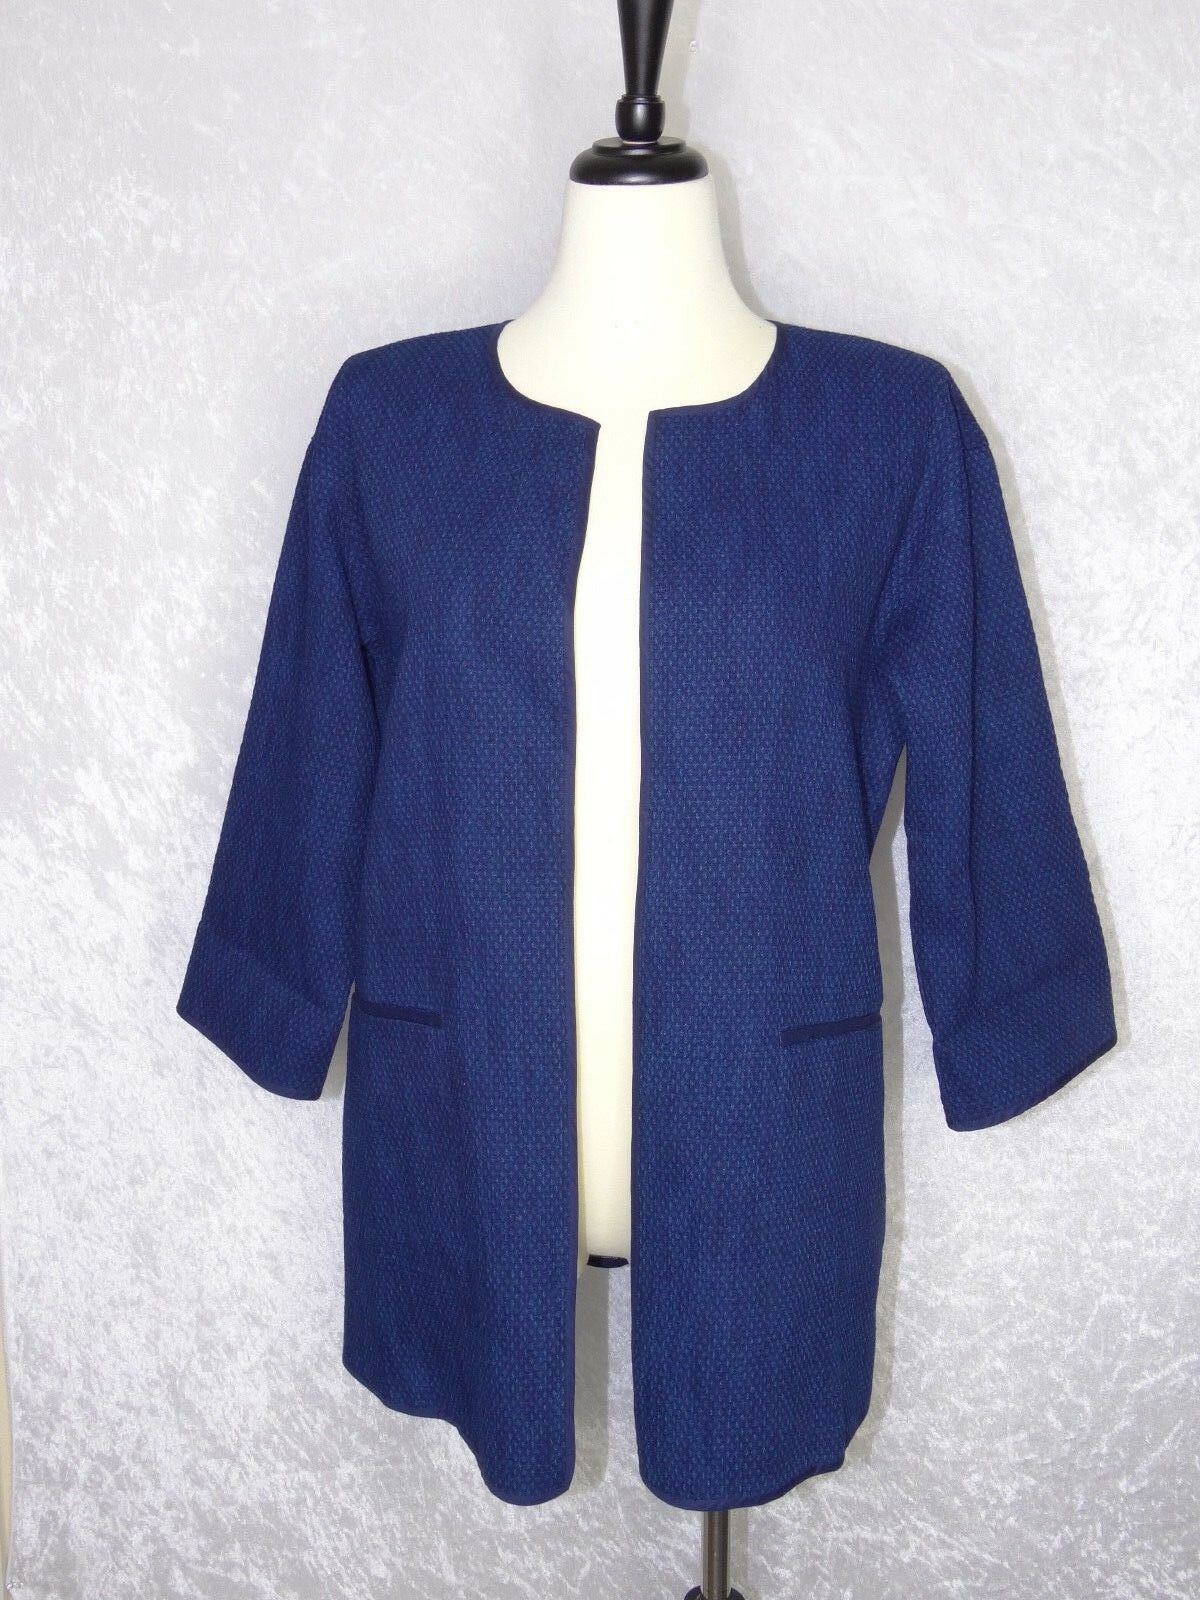 Eileen Fisher XS to Medium Open Cardigan bluee Blazer